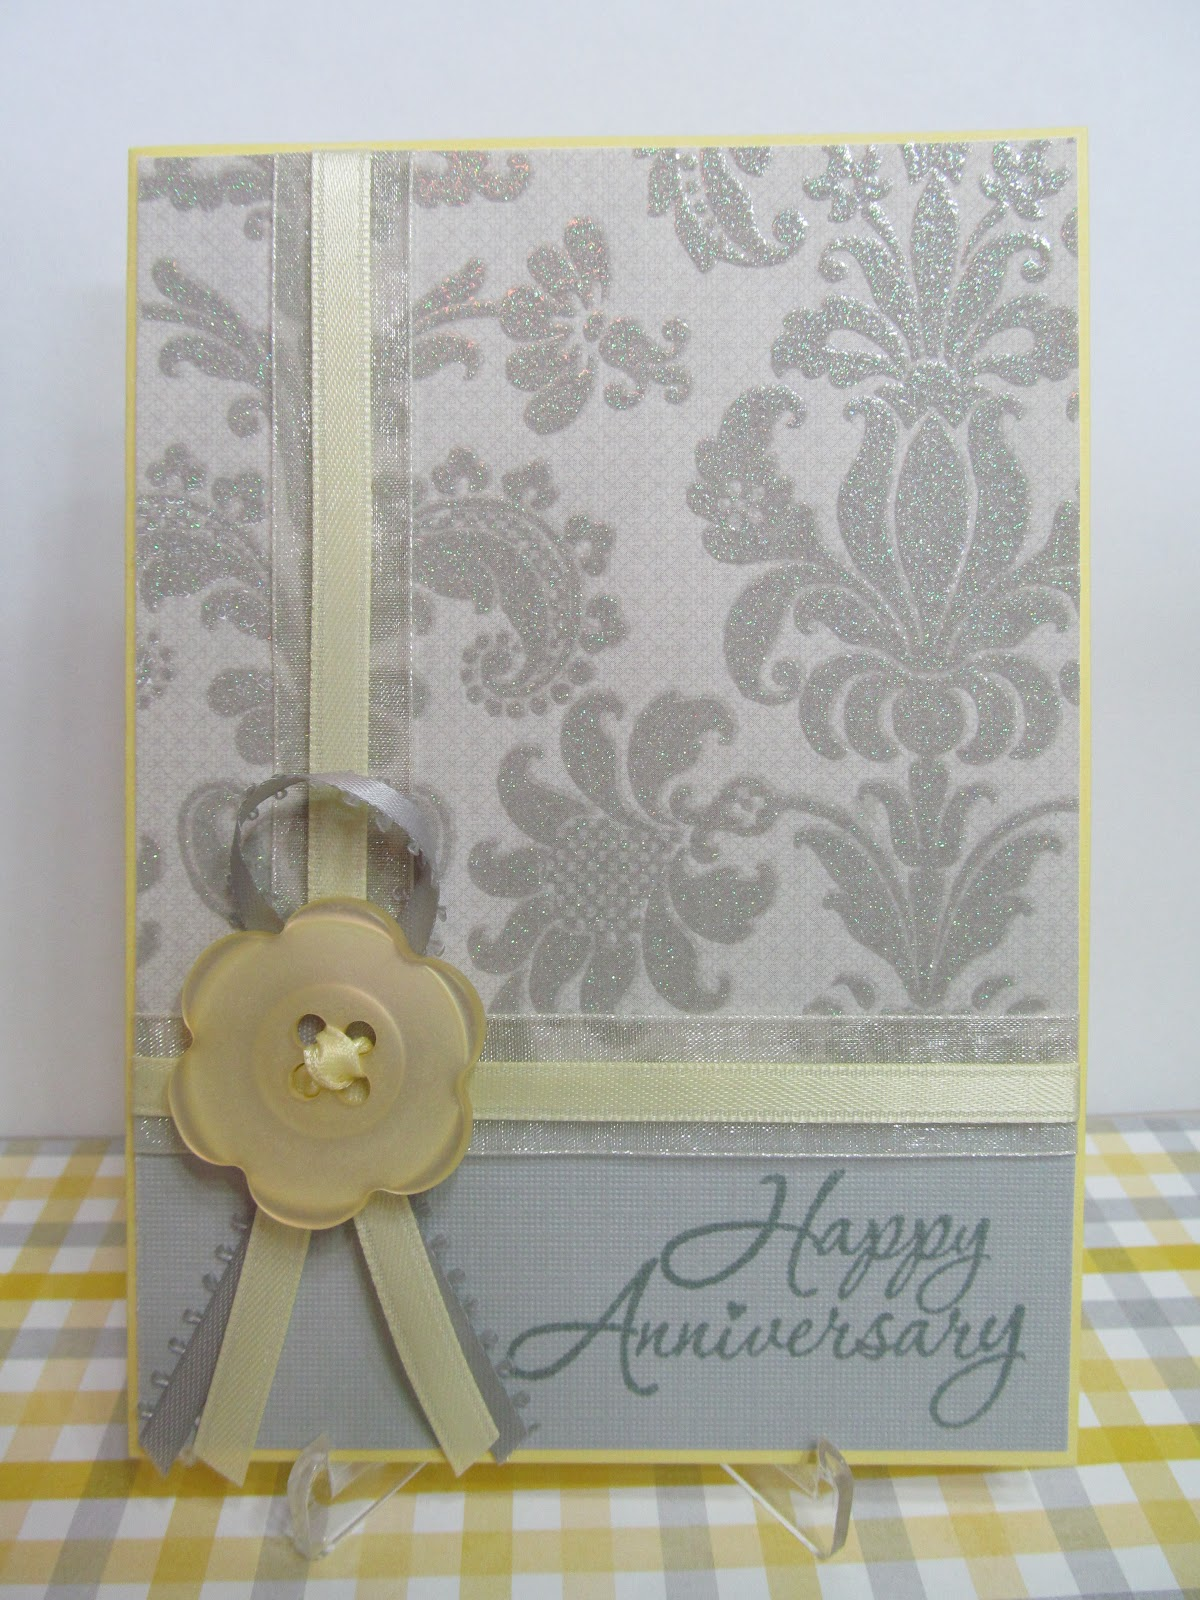 images of handmade cards - photo #43